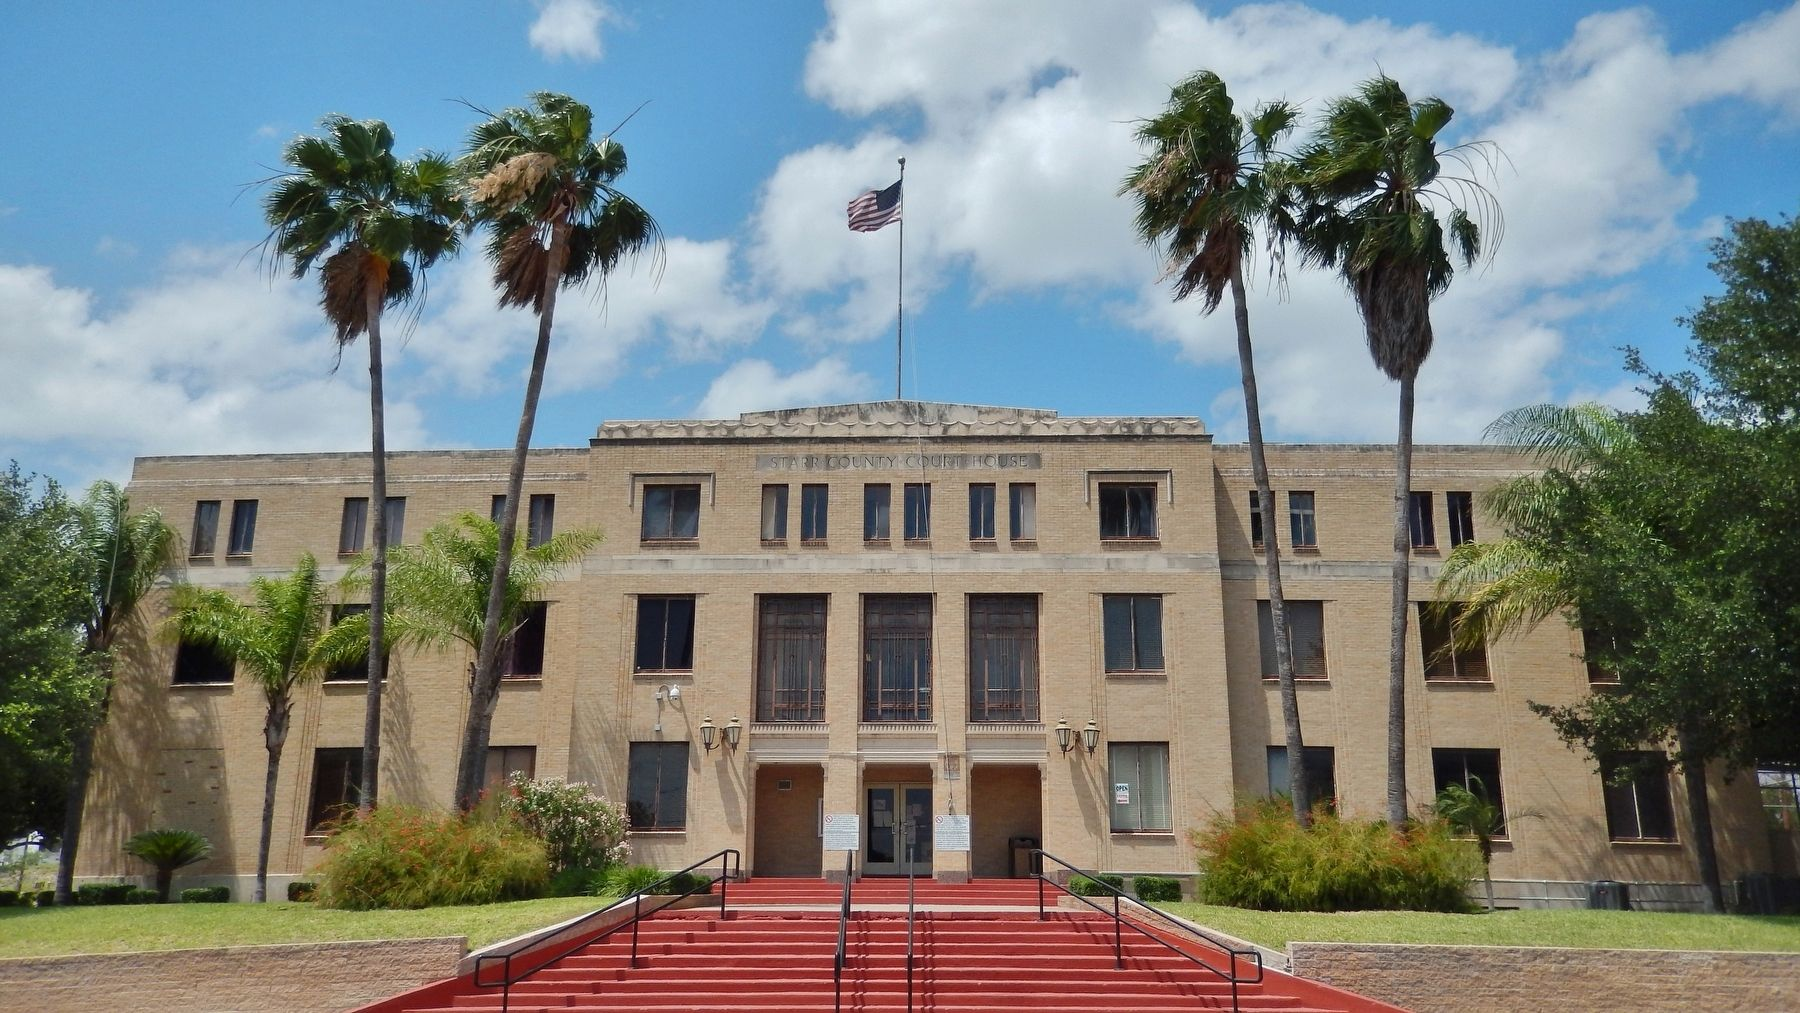 Starr County Courthouse (<i>near marker; at north end of plaza</i>) image. Click for full size.